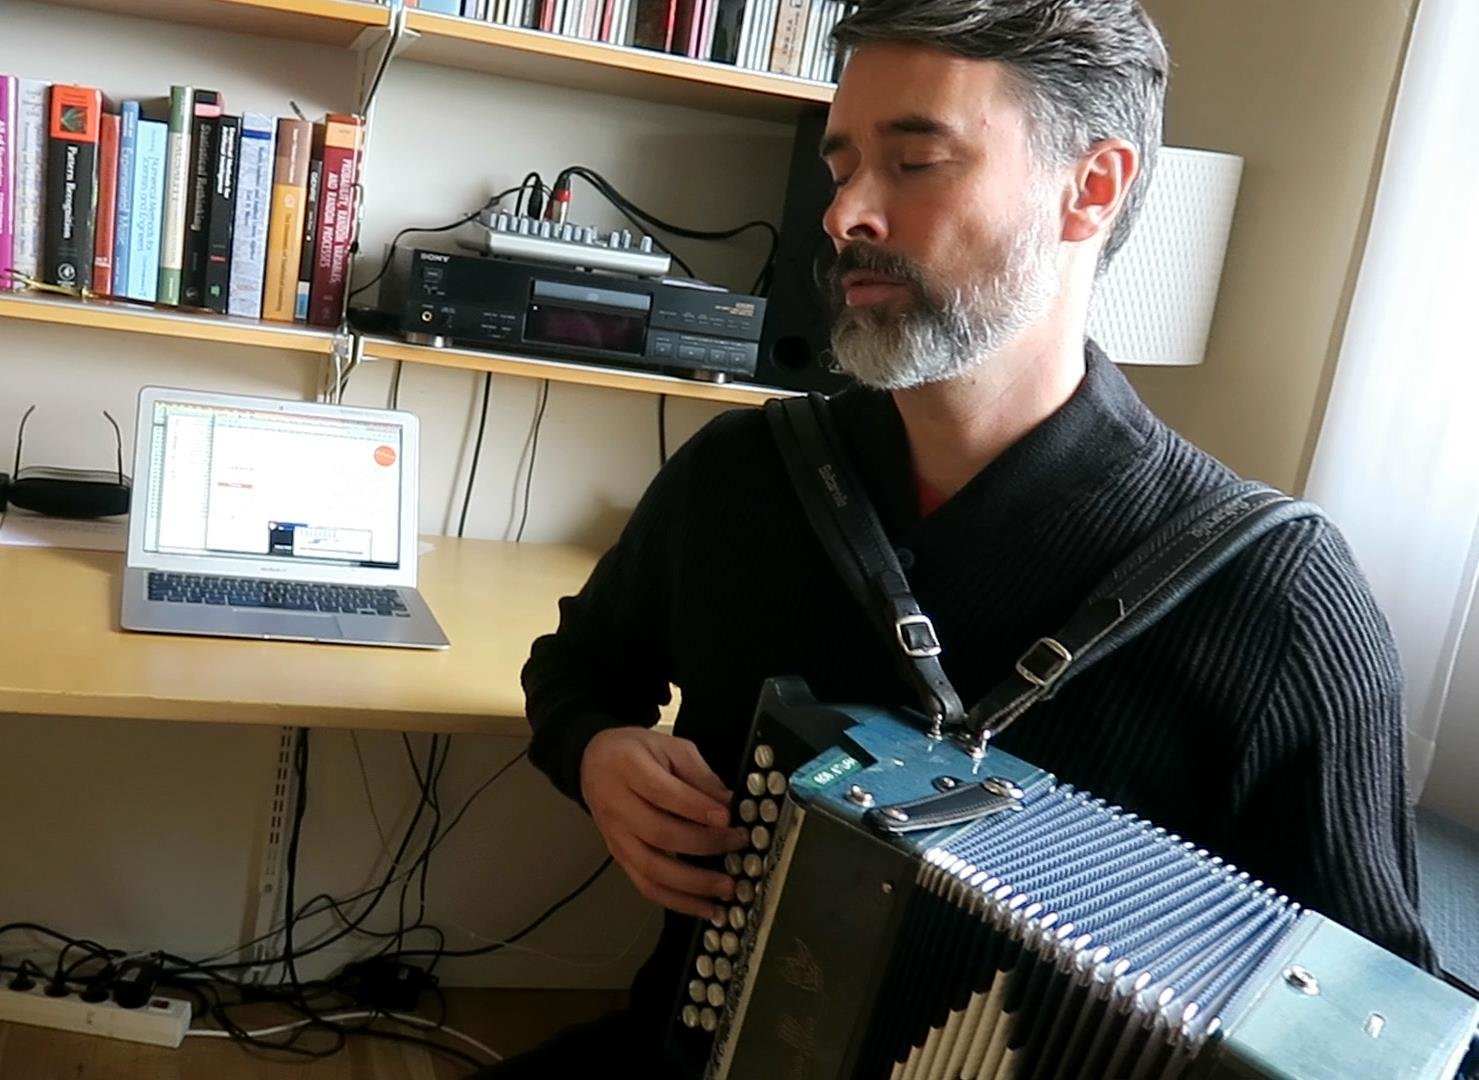 Artificial intelligence create more than 100,000 new tunes based on Irish and English folk tunes